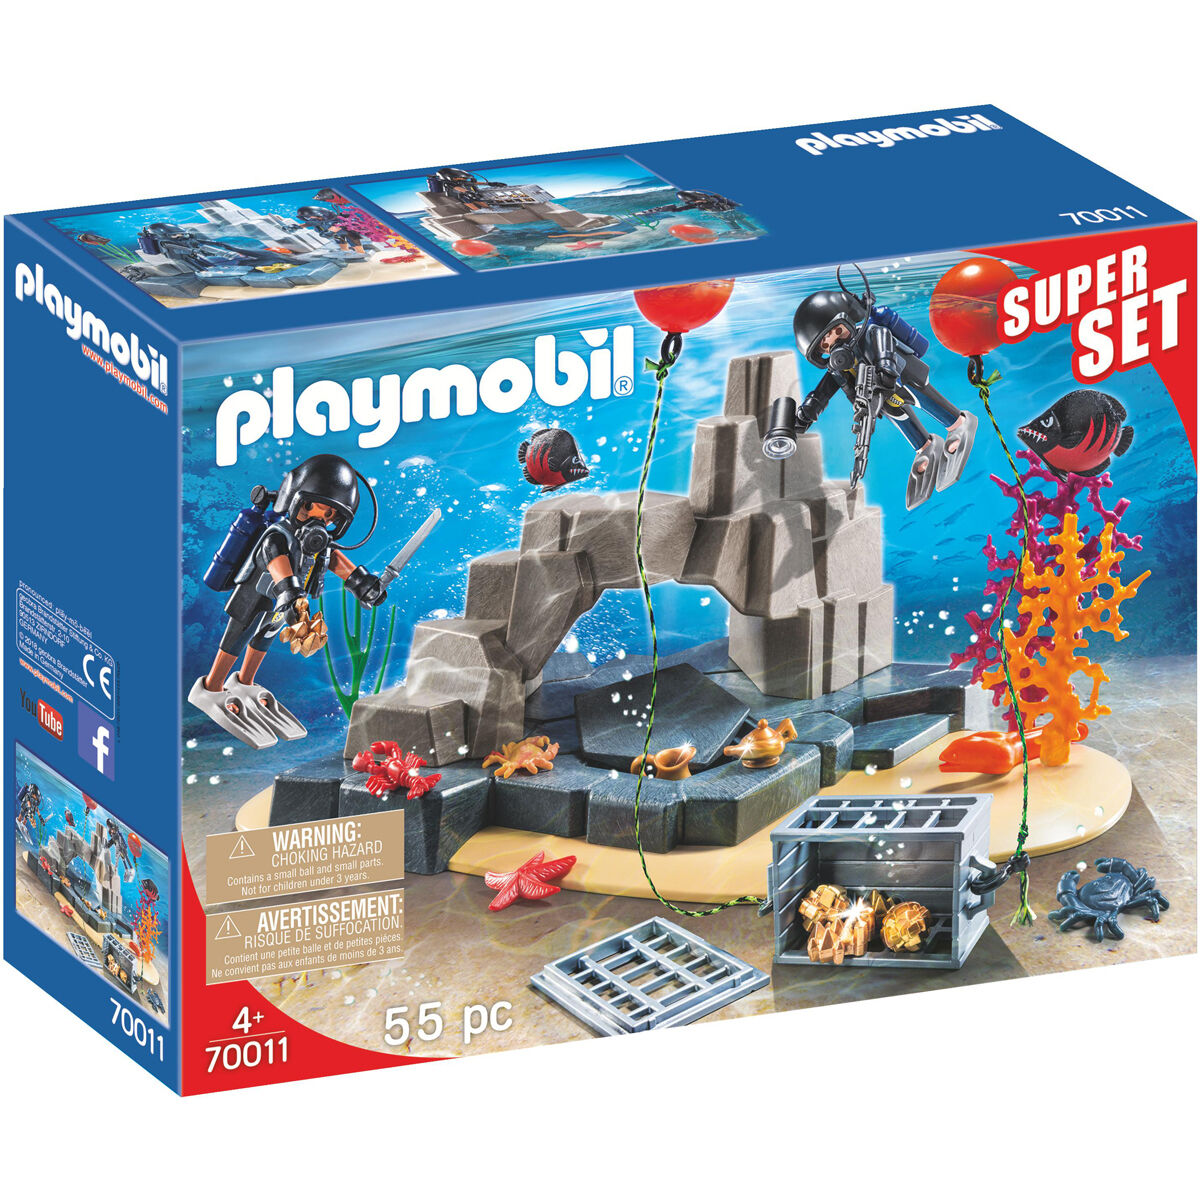 Amazon Kinderspielzeug Küche Playmobil Küche Amazon